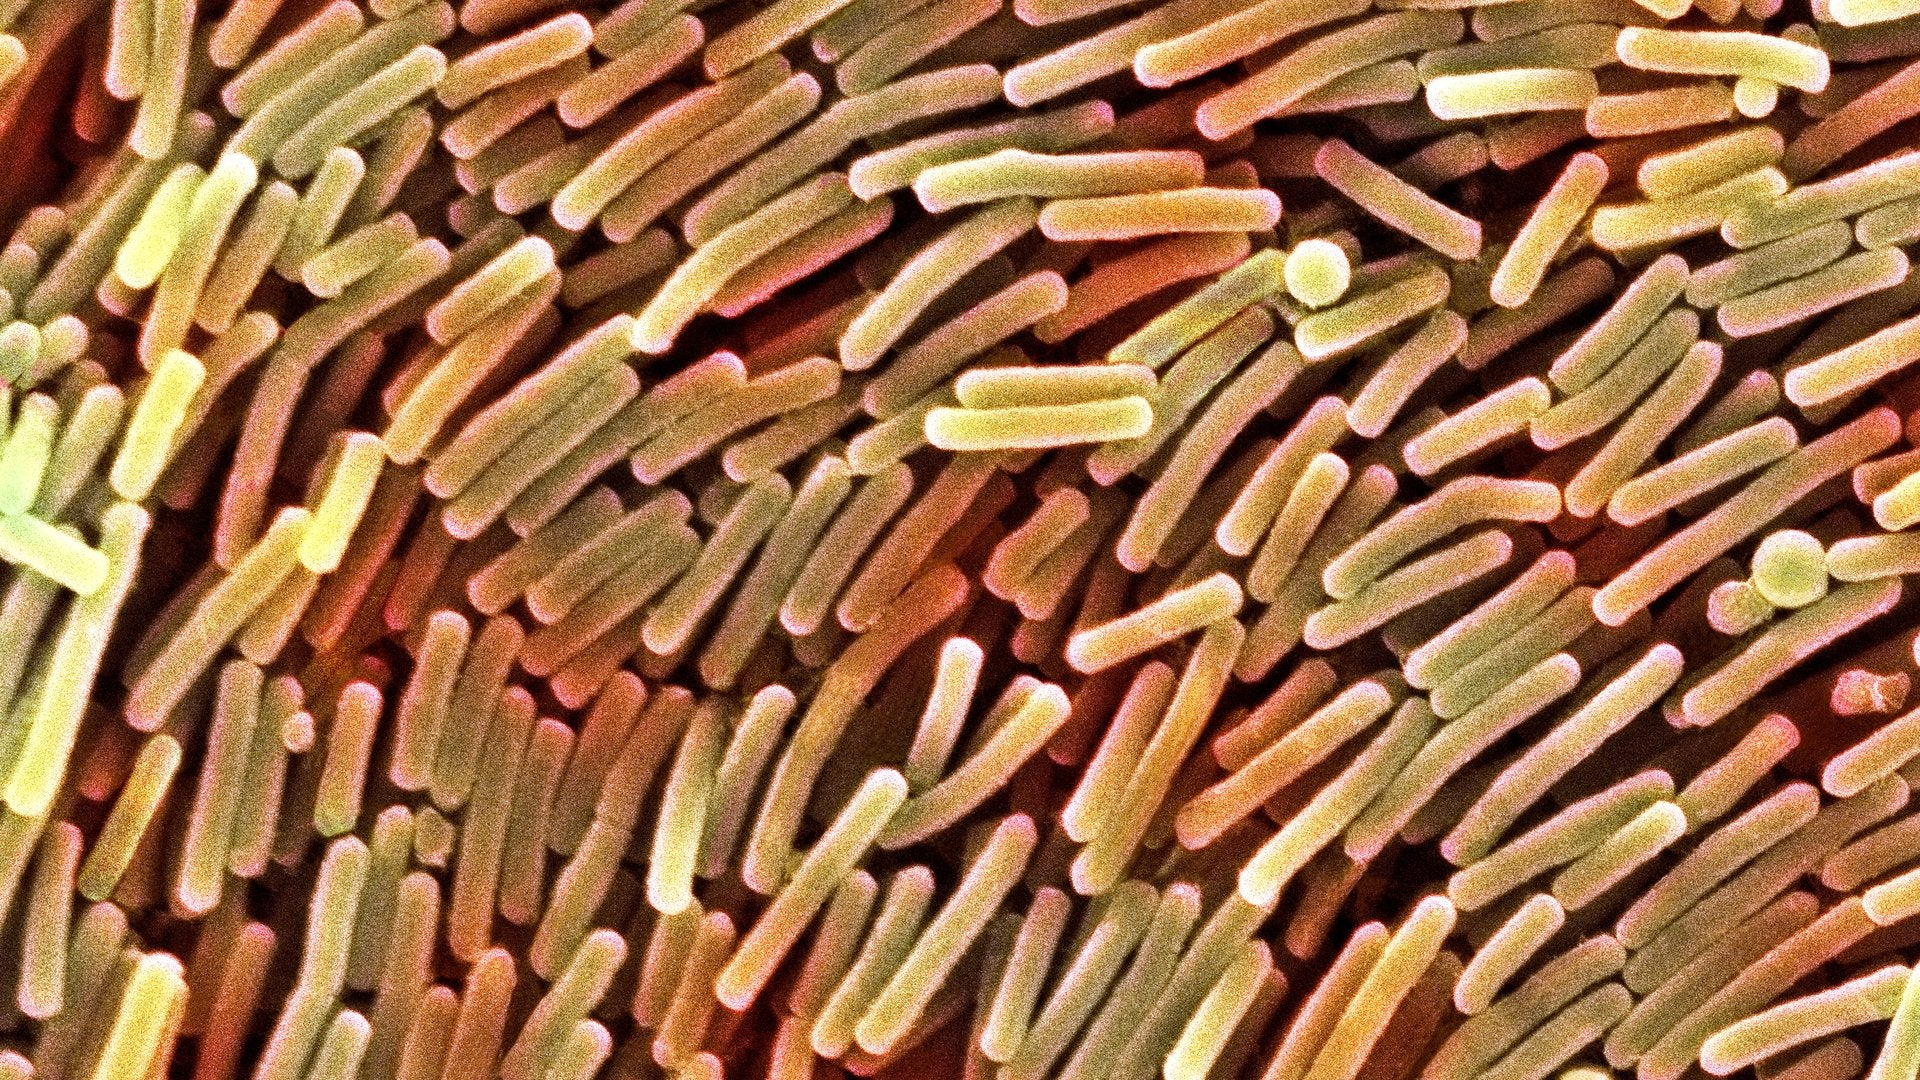 Clostridium difficile Is More Common Than You Think